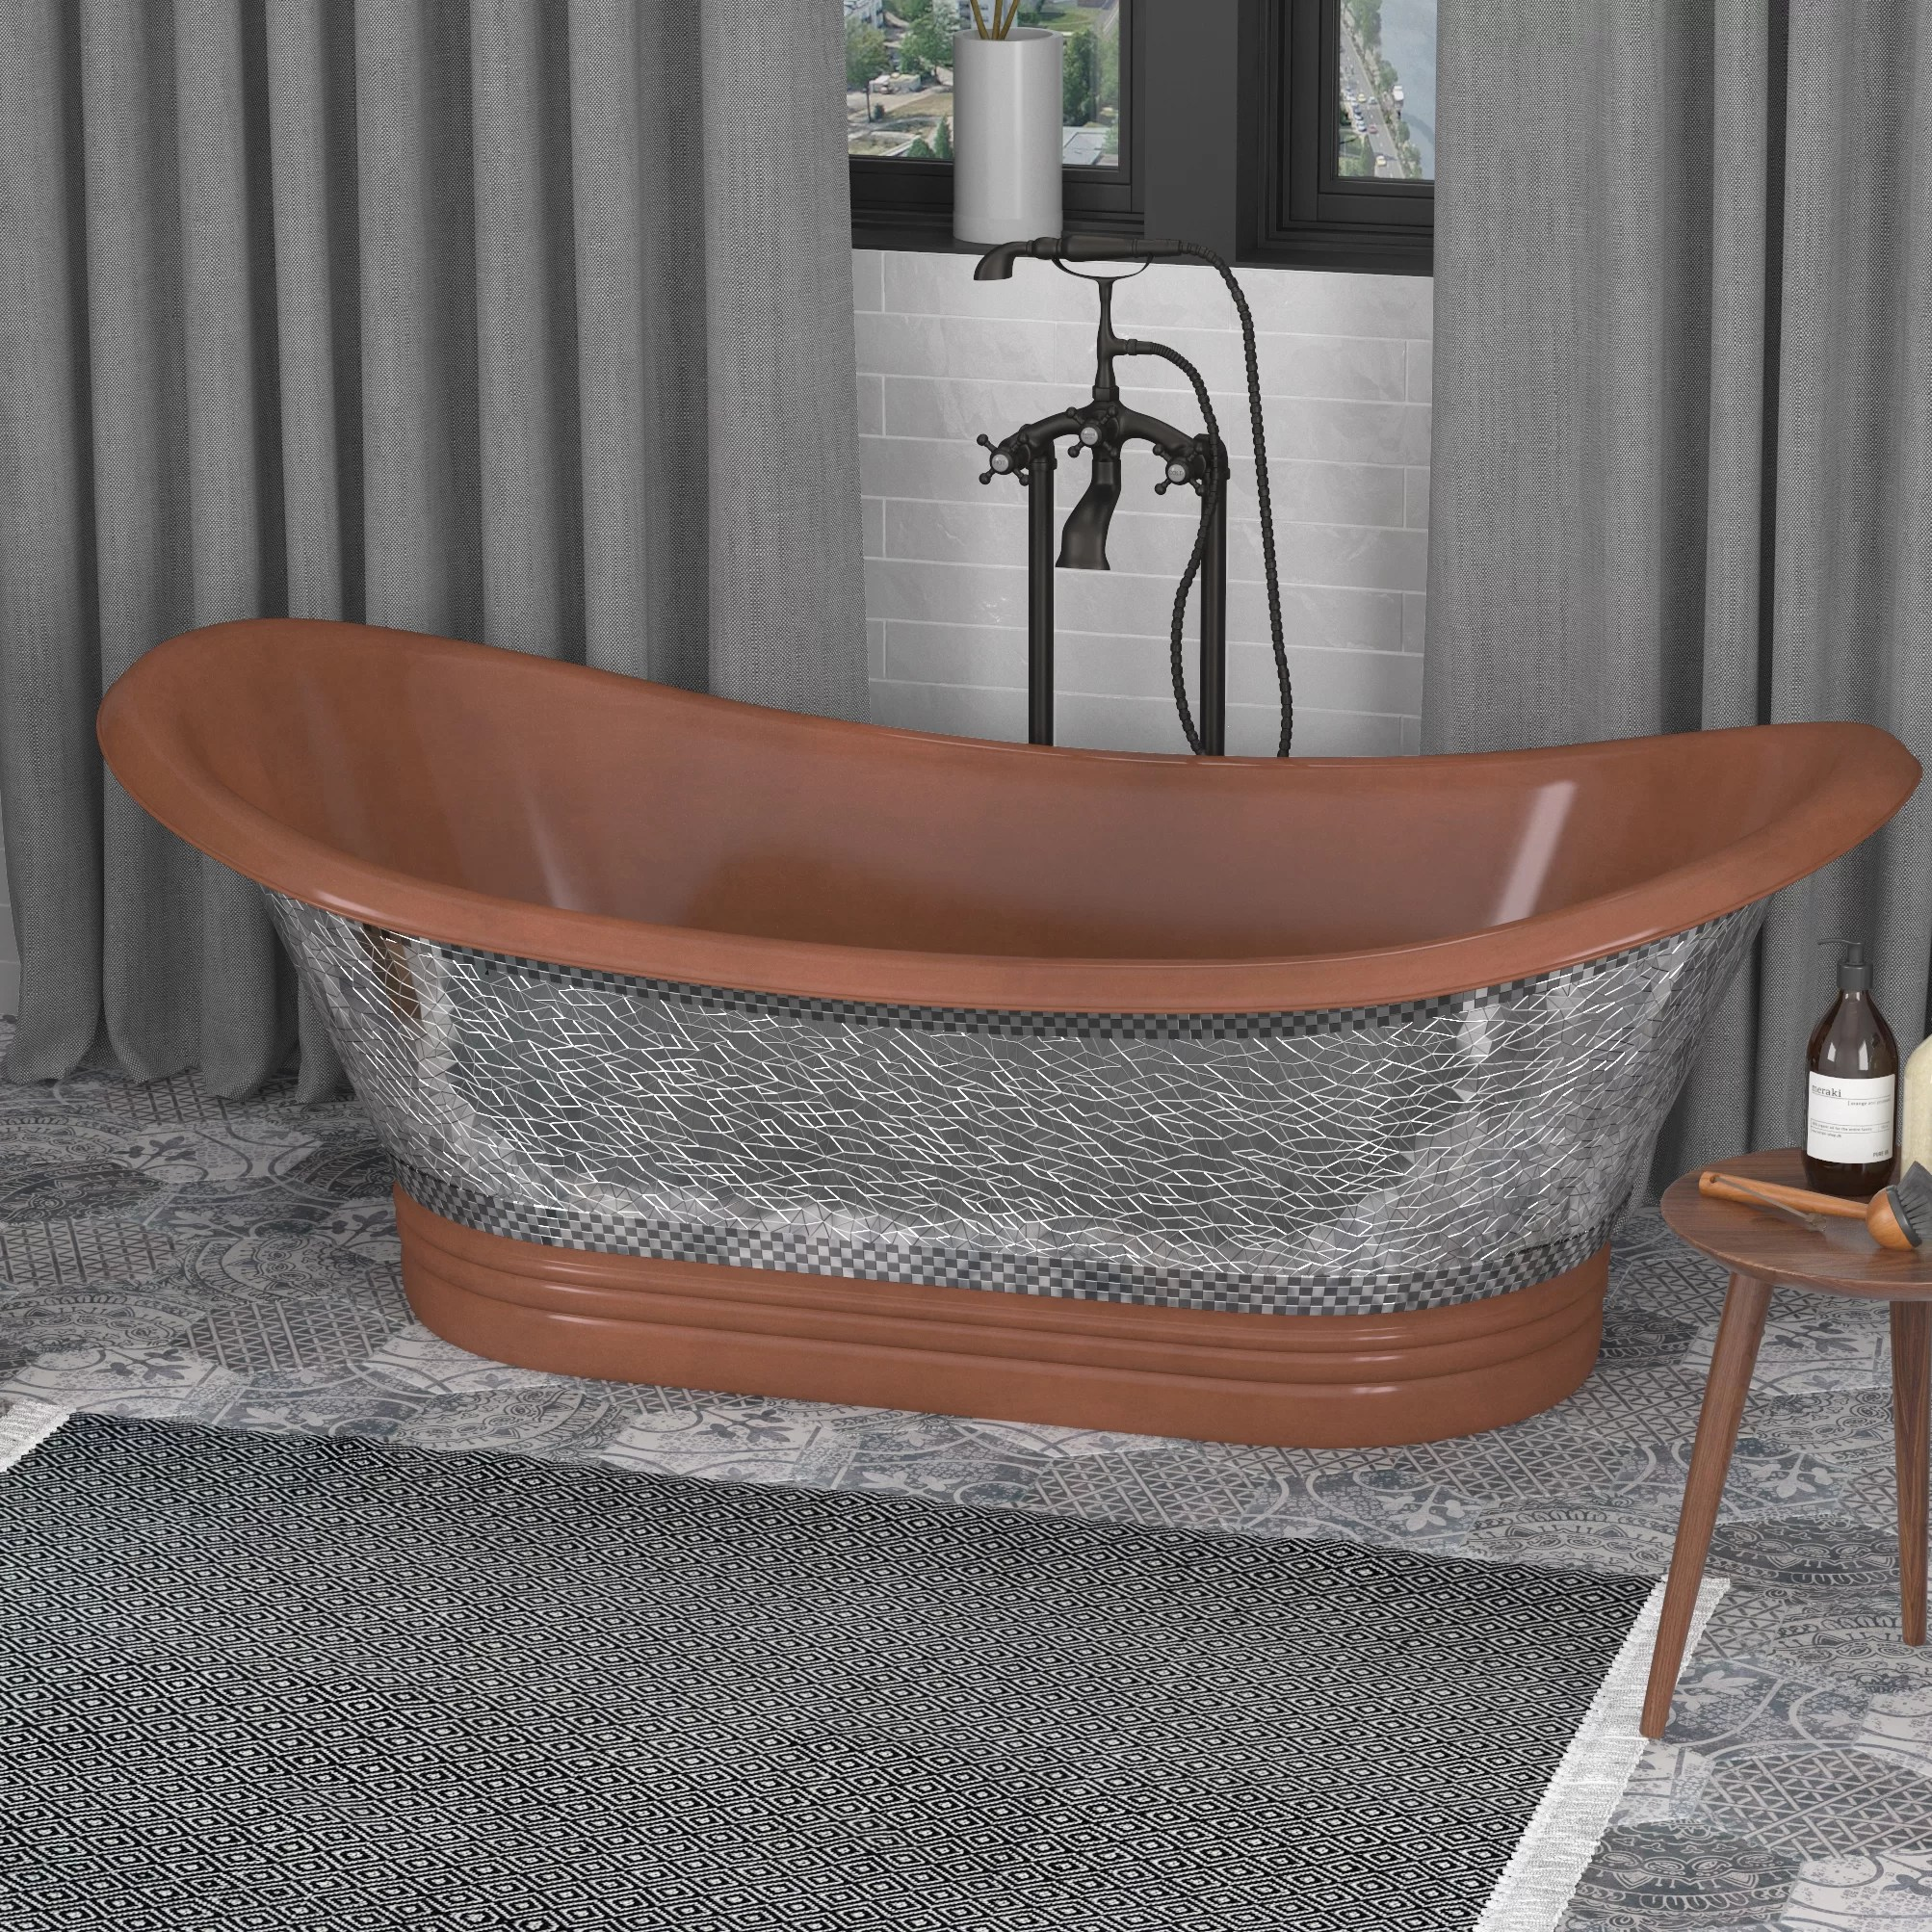 Anzzi Theodosius 68 In Handmade Copper Double Slipper Freestanding Bathtub In Polished Antique Copper Wayfair Ca